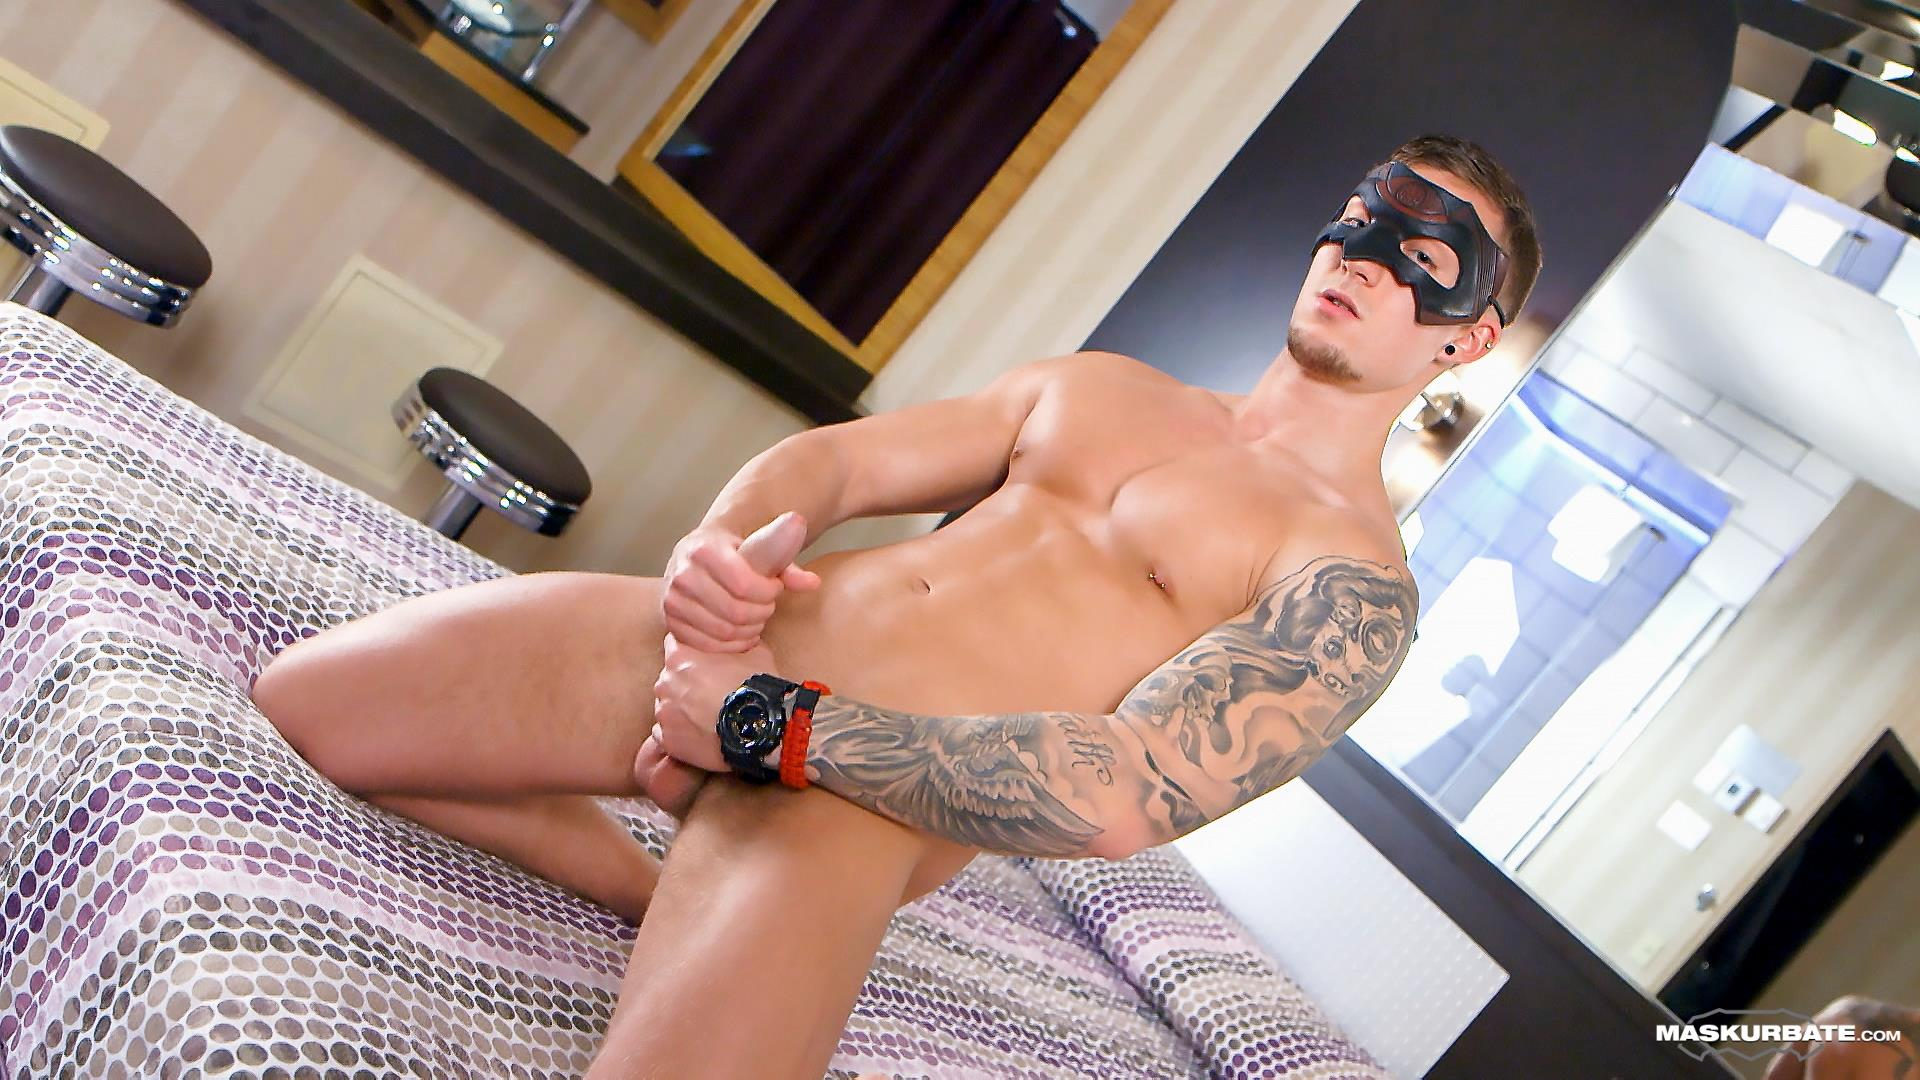 Maskurbate-Vince-Smooth-Muscle-Hunk-With-A-Big-Uncut-Cock-Jerking-Off-09 Smooth Tatted Body Builder Jerks Off His Big 9